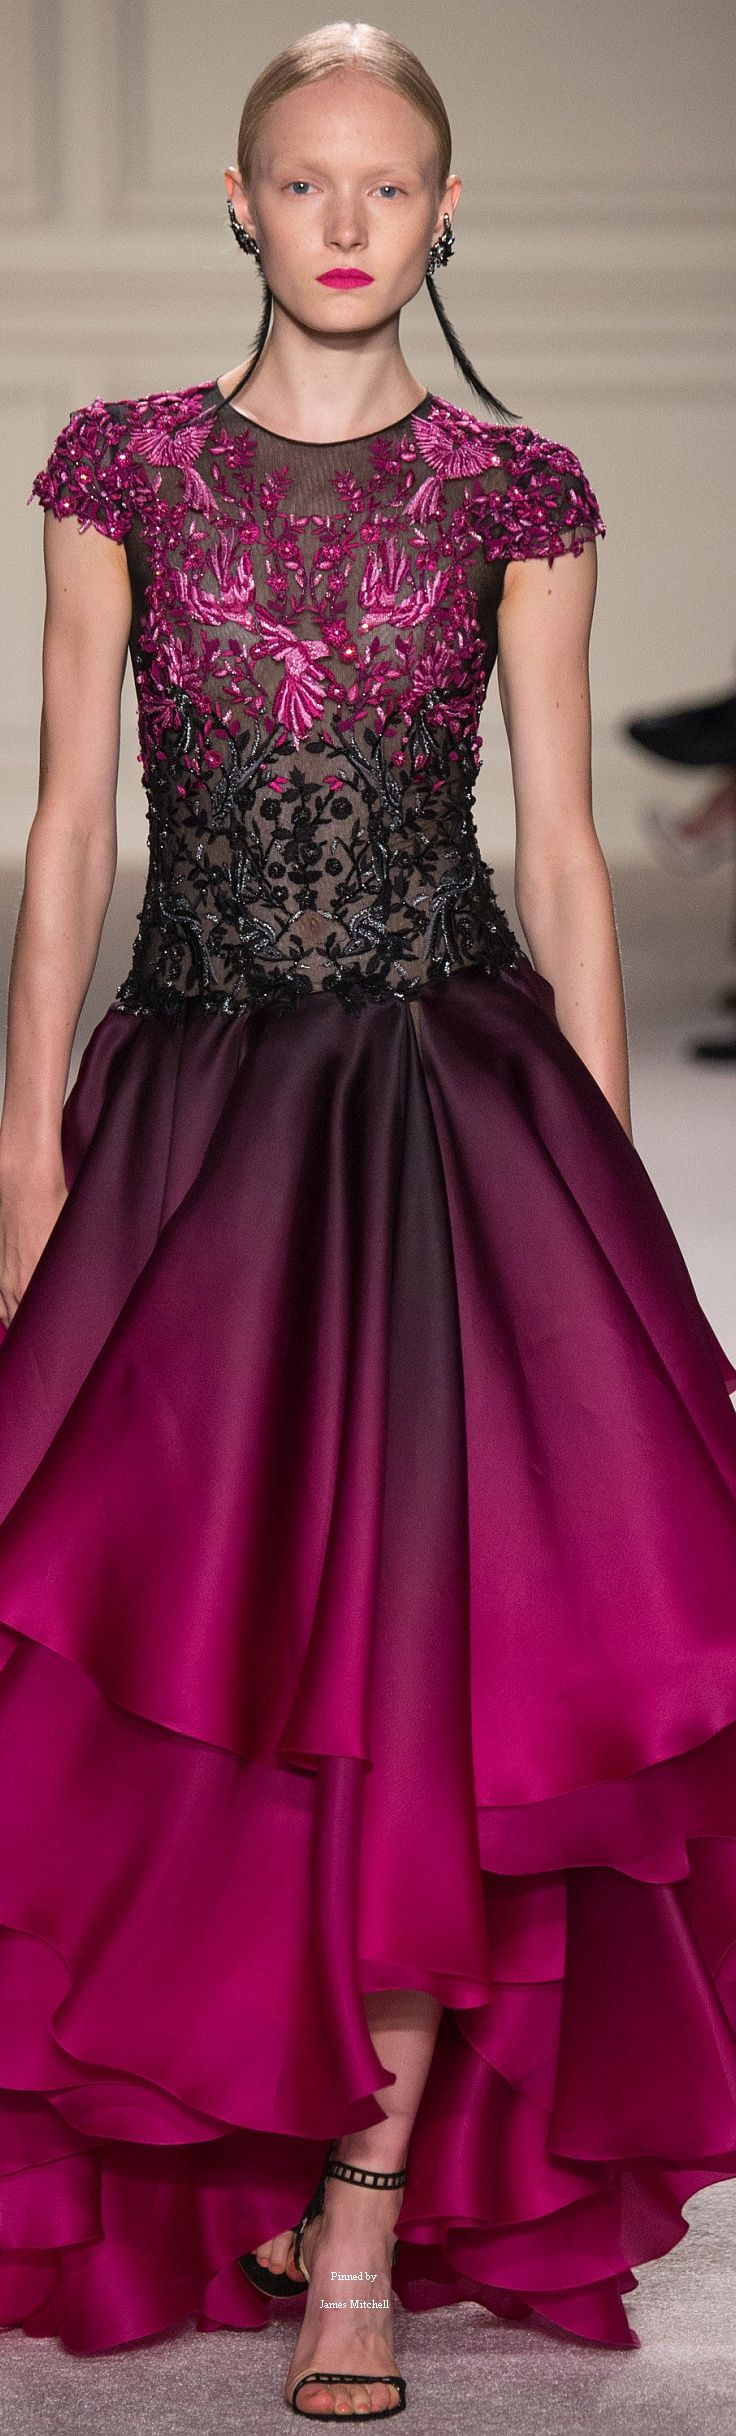 best fashion images on pinterest high fashion evening gowns